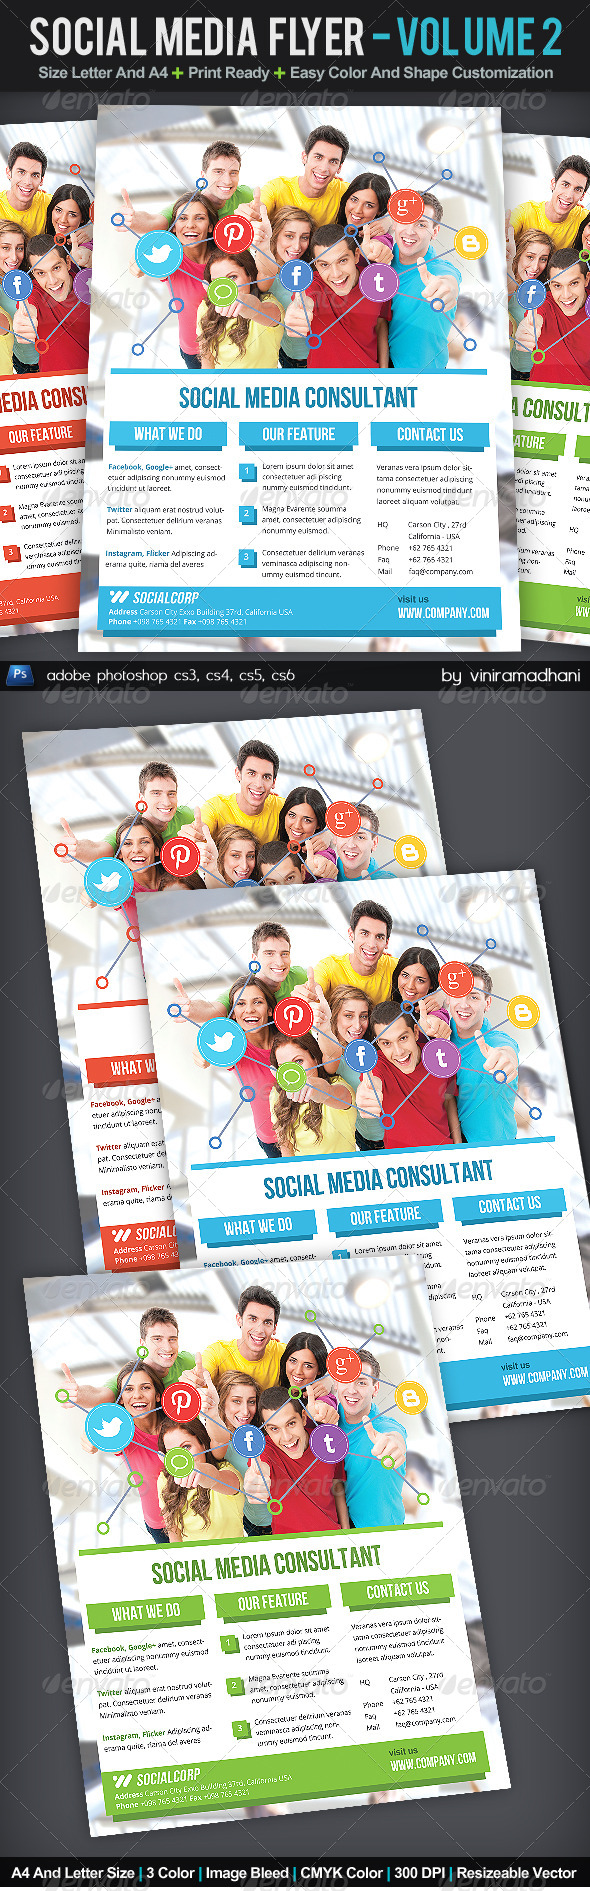 GraphicRiver Social Media Flyer Volume 2 5988695